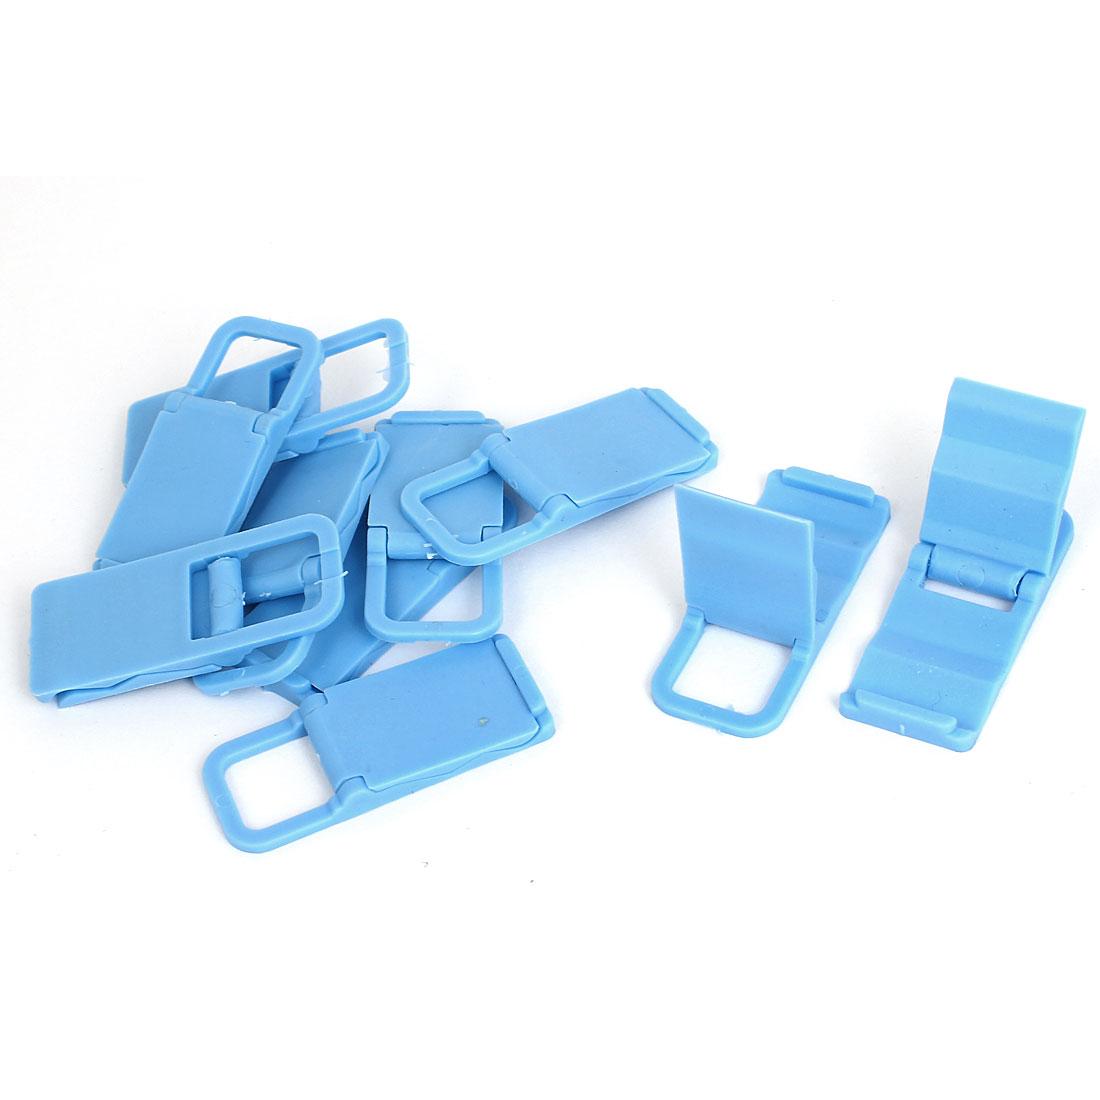 10pcs Beach Chair Mobile Phone Folding Holder Stand Bracket Support Blue